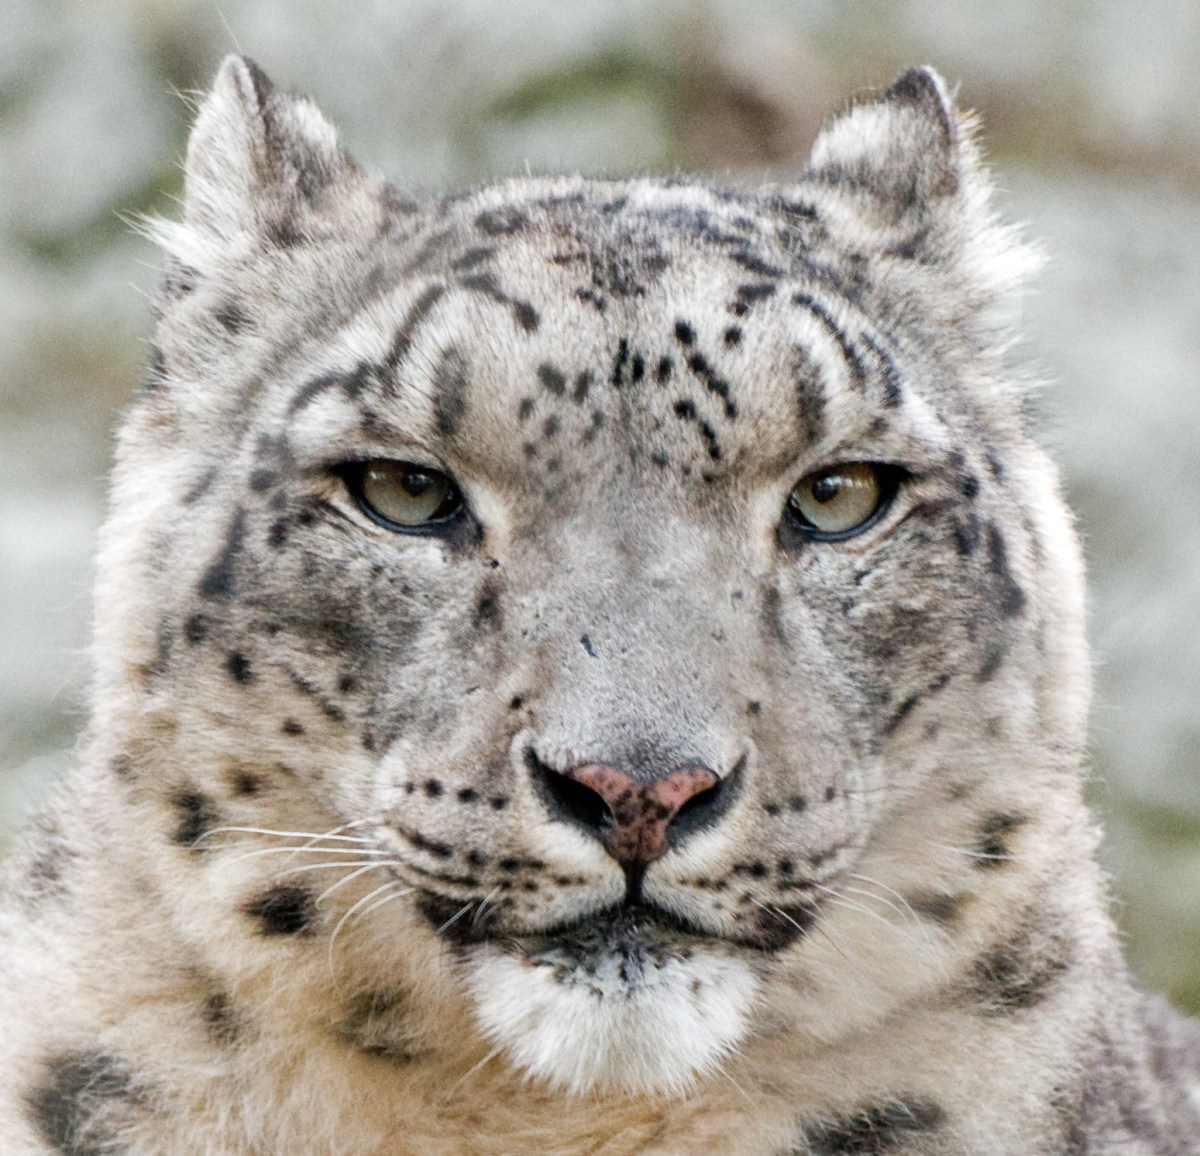 Snow leopards are found in the Tien Shan mountains